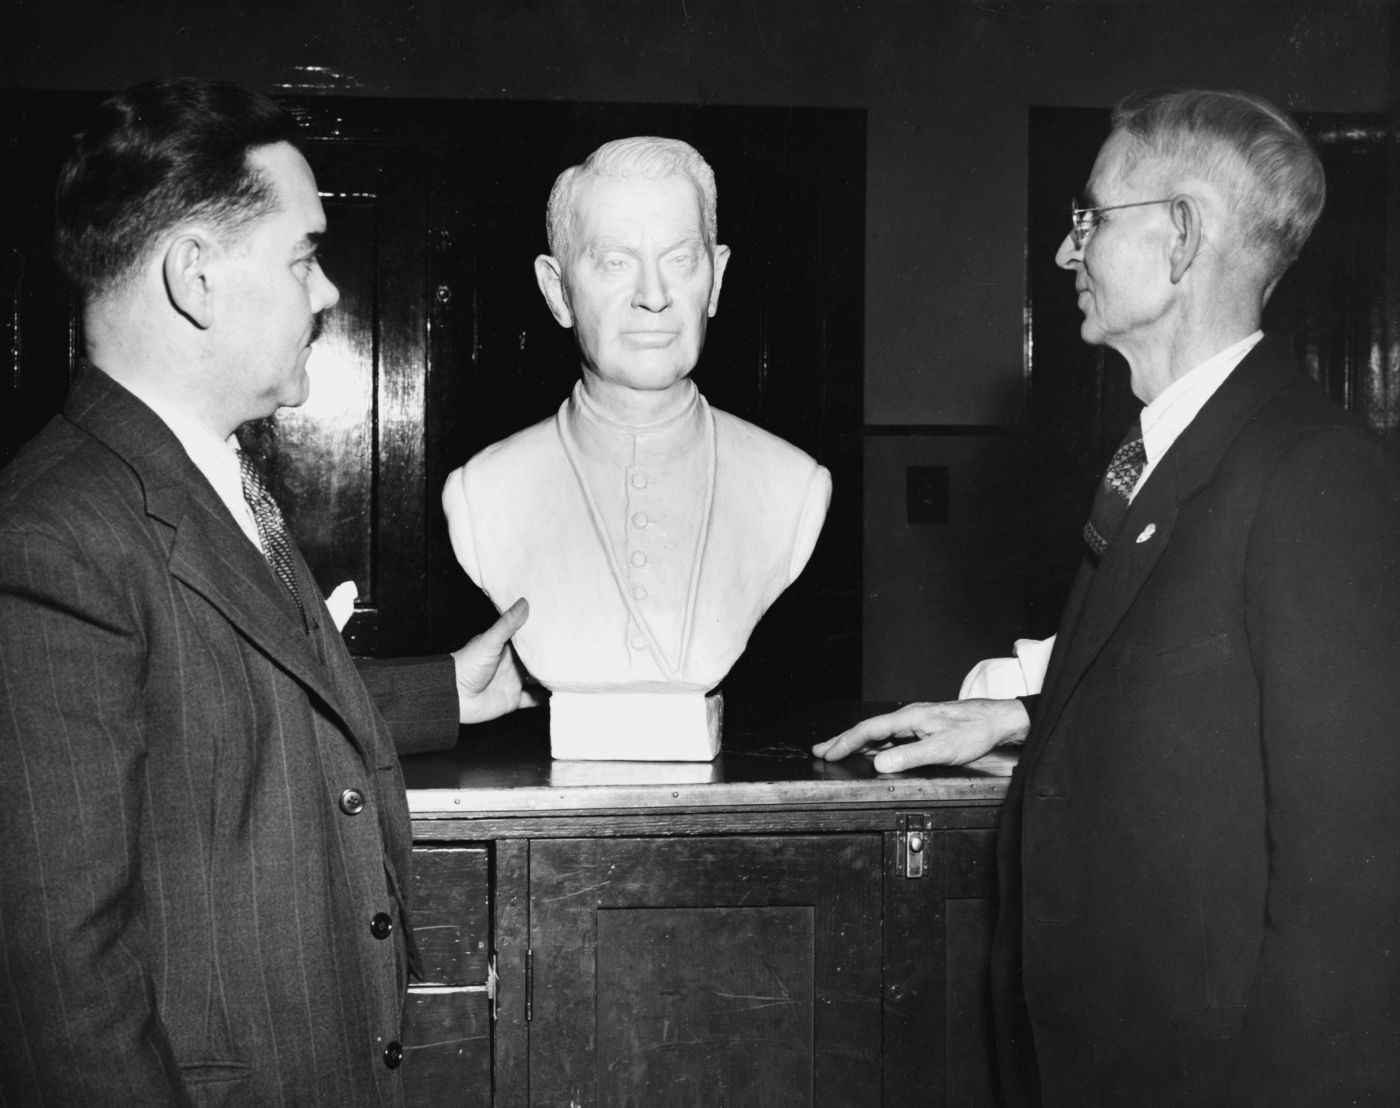 Black and white photograph of two men, in suits and ties, standing on either side of the plaster bust of a religious, middle-aged figure. The first man, middle-aged and mustached, touches the lower part of the figure with his left hand; the second, older and wearing glasses, places his right hand on the chest where the bust is placed.